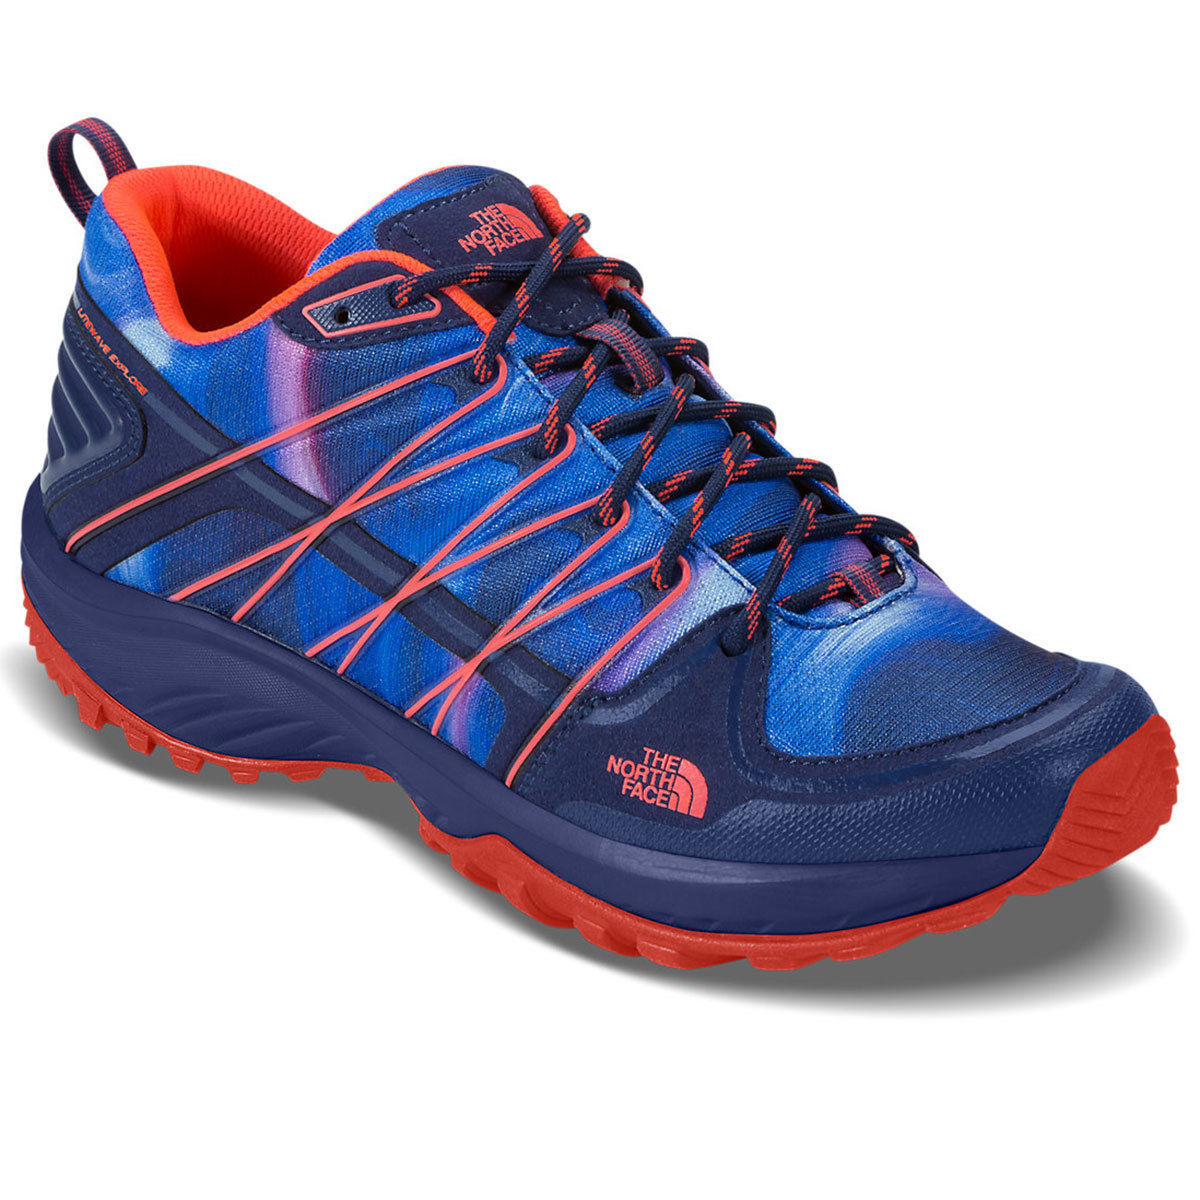 photo: The North Face Women's Litewave Explore trail shoe